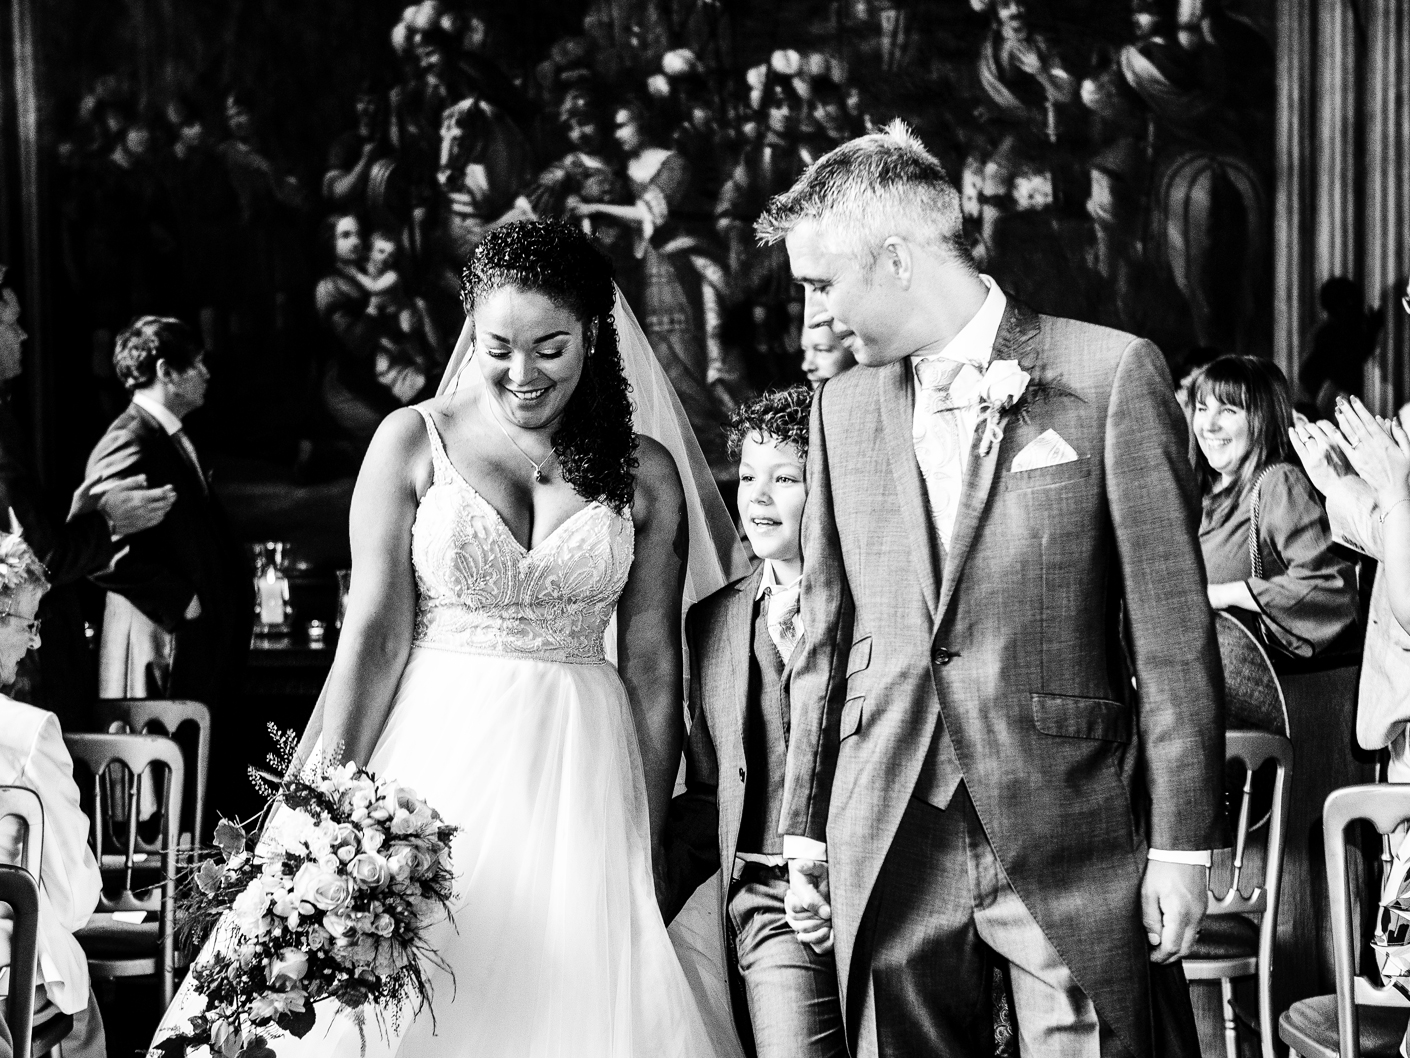 celebrations-after-the-wedding-ceremony-at-adlington-hall-cheshire